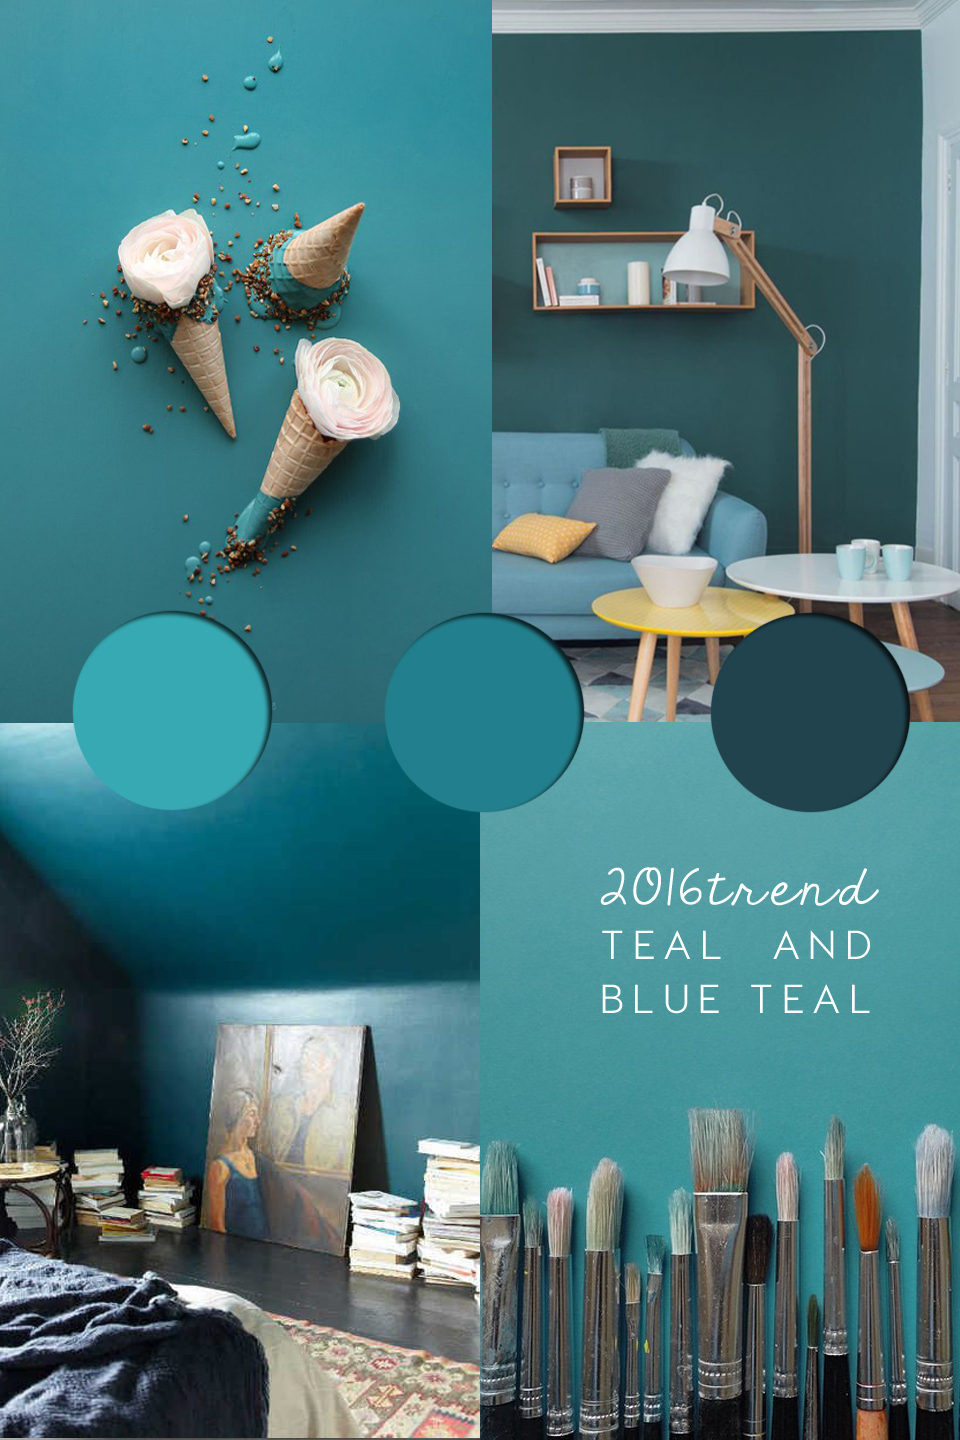 Teal Paint, Teal Colour Trend, 2016 Decor Colours, Teal Home Decor, Teal